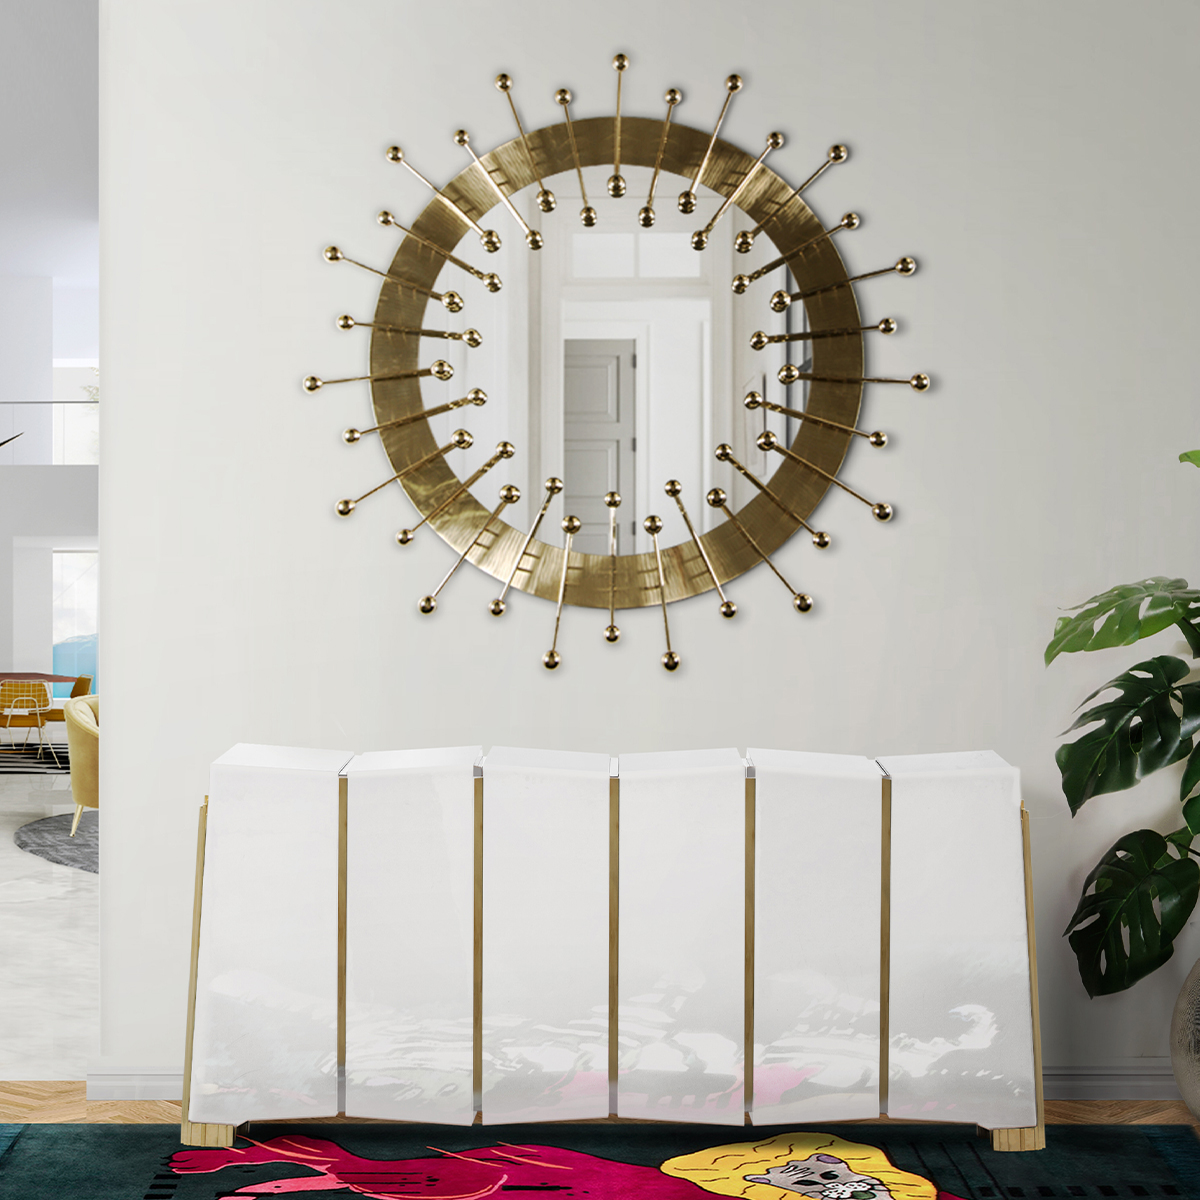 Top 25 Luxury Mirrors That Will Enhance Your Home_5 luxury mirrors Top 20 Luxury Mirrors That Will Enhance Your Home Top 25 Luxury Mirrors That Will Enhance Your Home 5